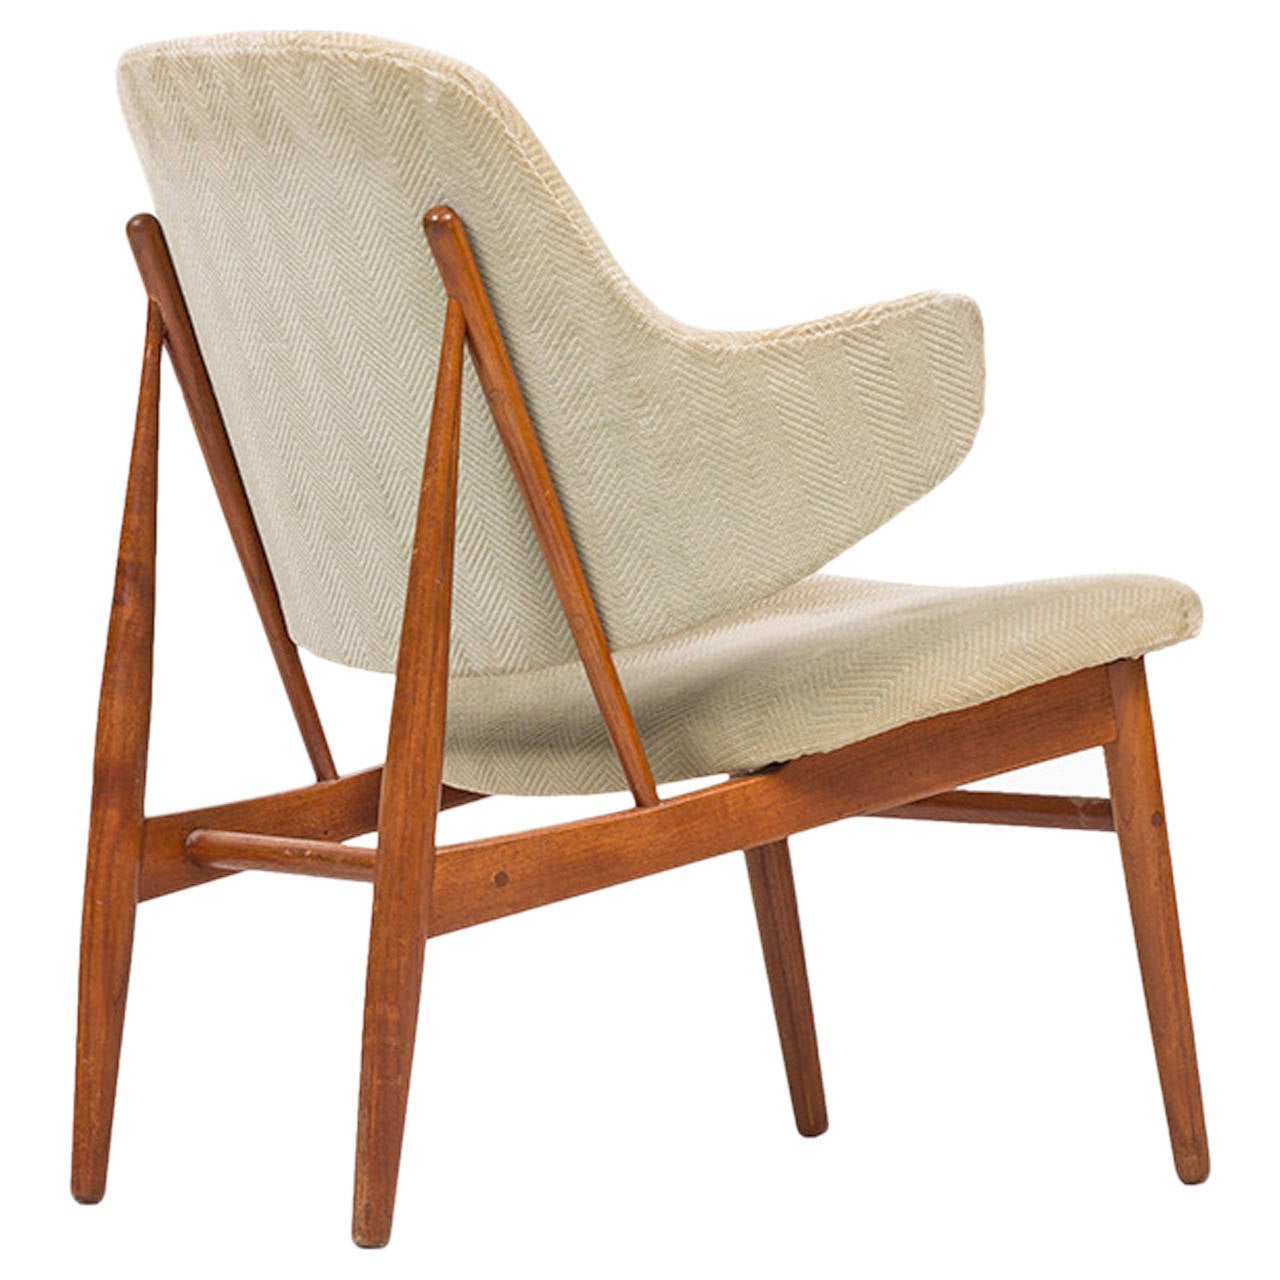 Easy Chairs Ib Kofod Larsen Easy Chair By Christensen And Larsen In